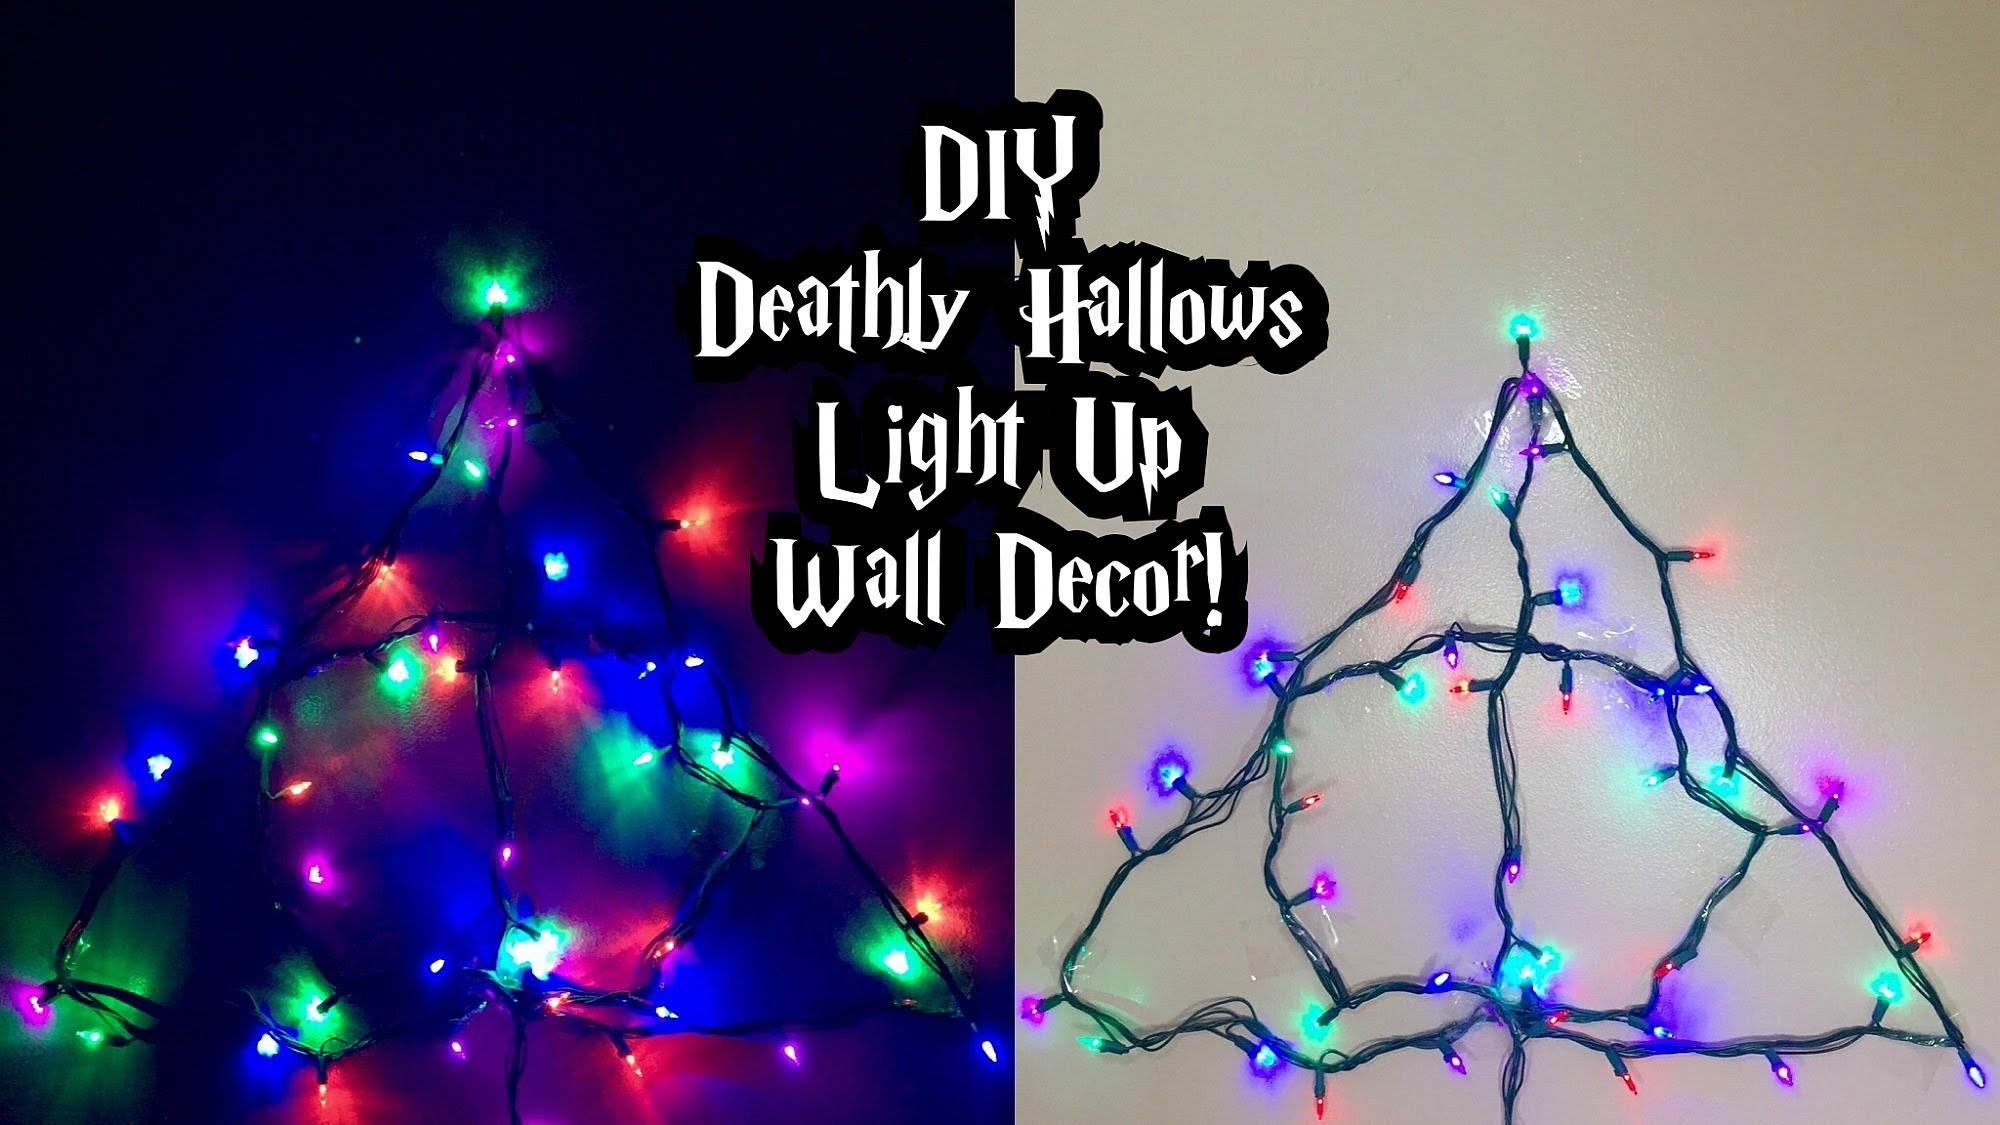 DIY Deathly Hallows light up wall decor - Everything 4 Christmas